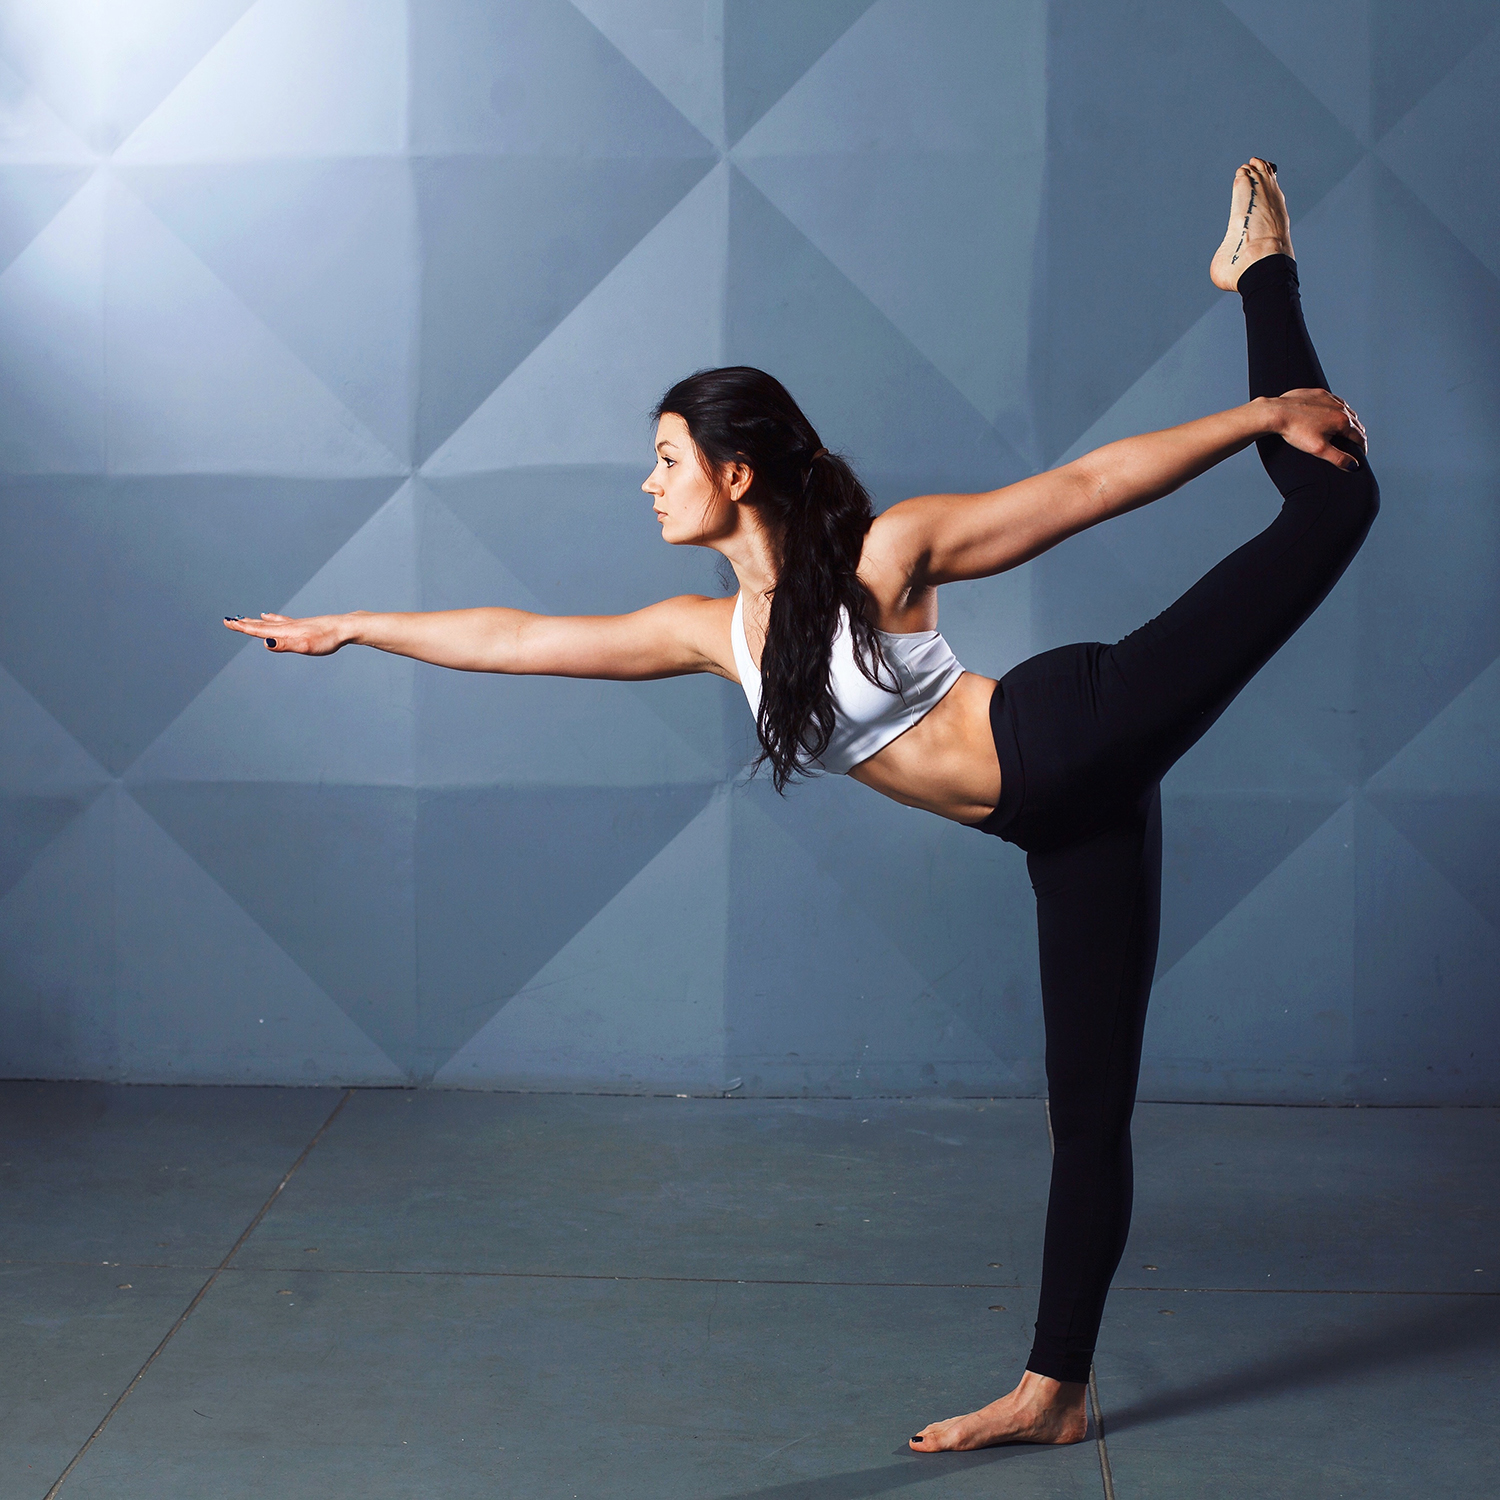 Flexible Yogi Doing The Dancer's Pose. Balancing Yoga Pose